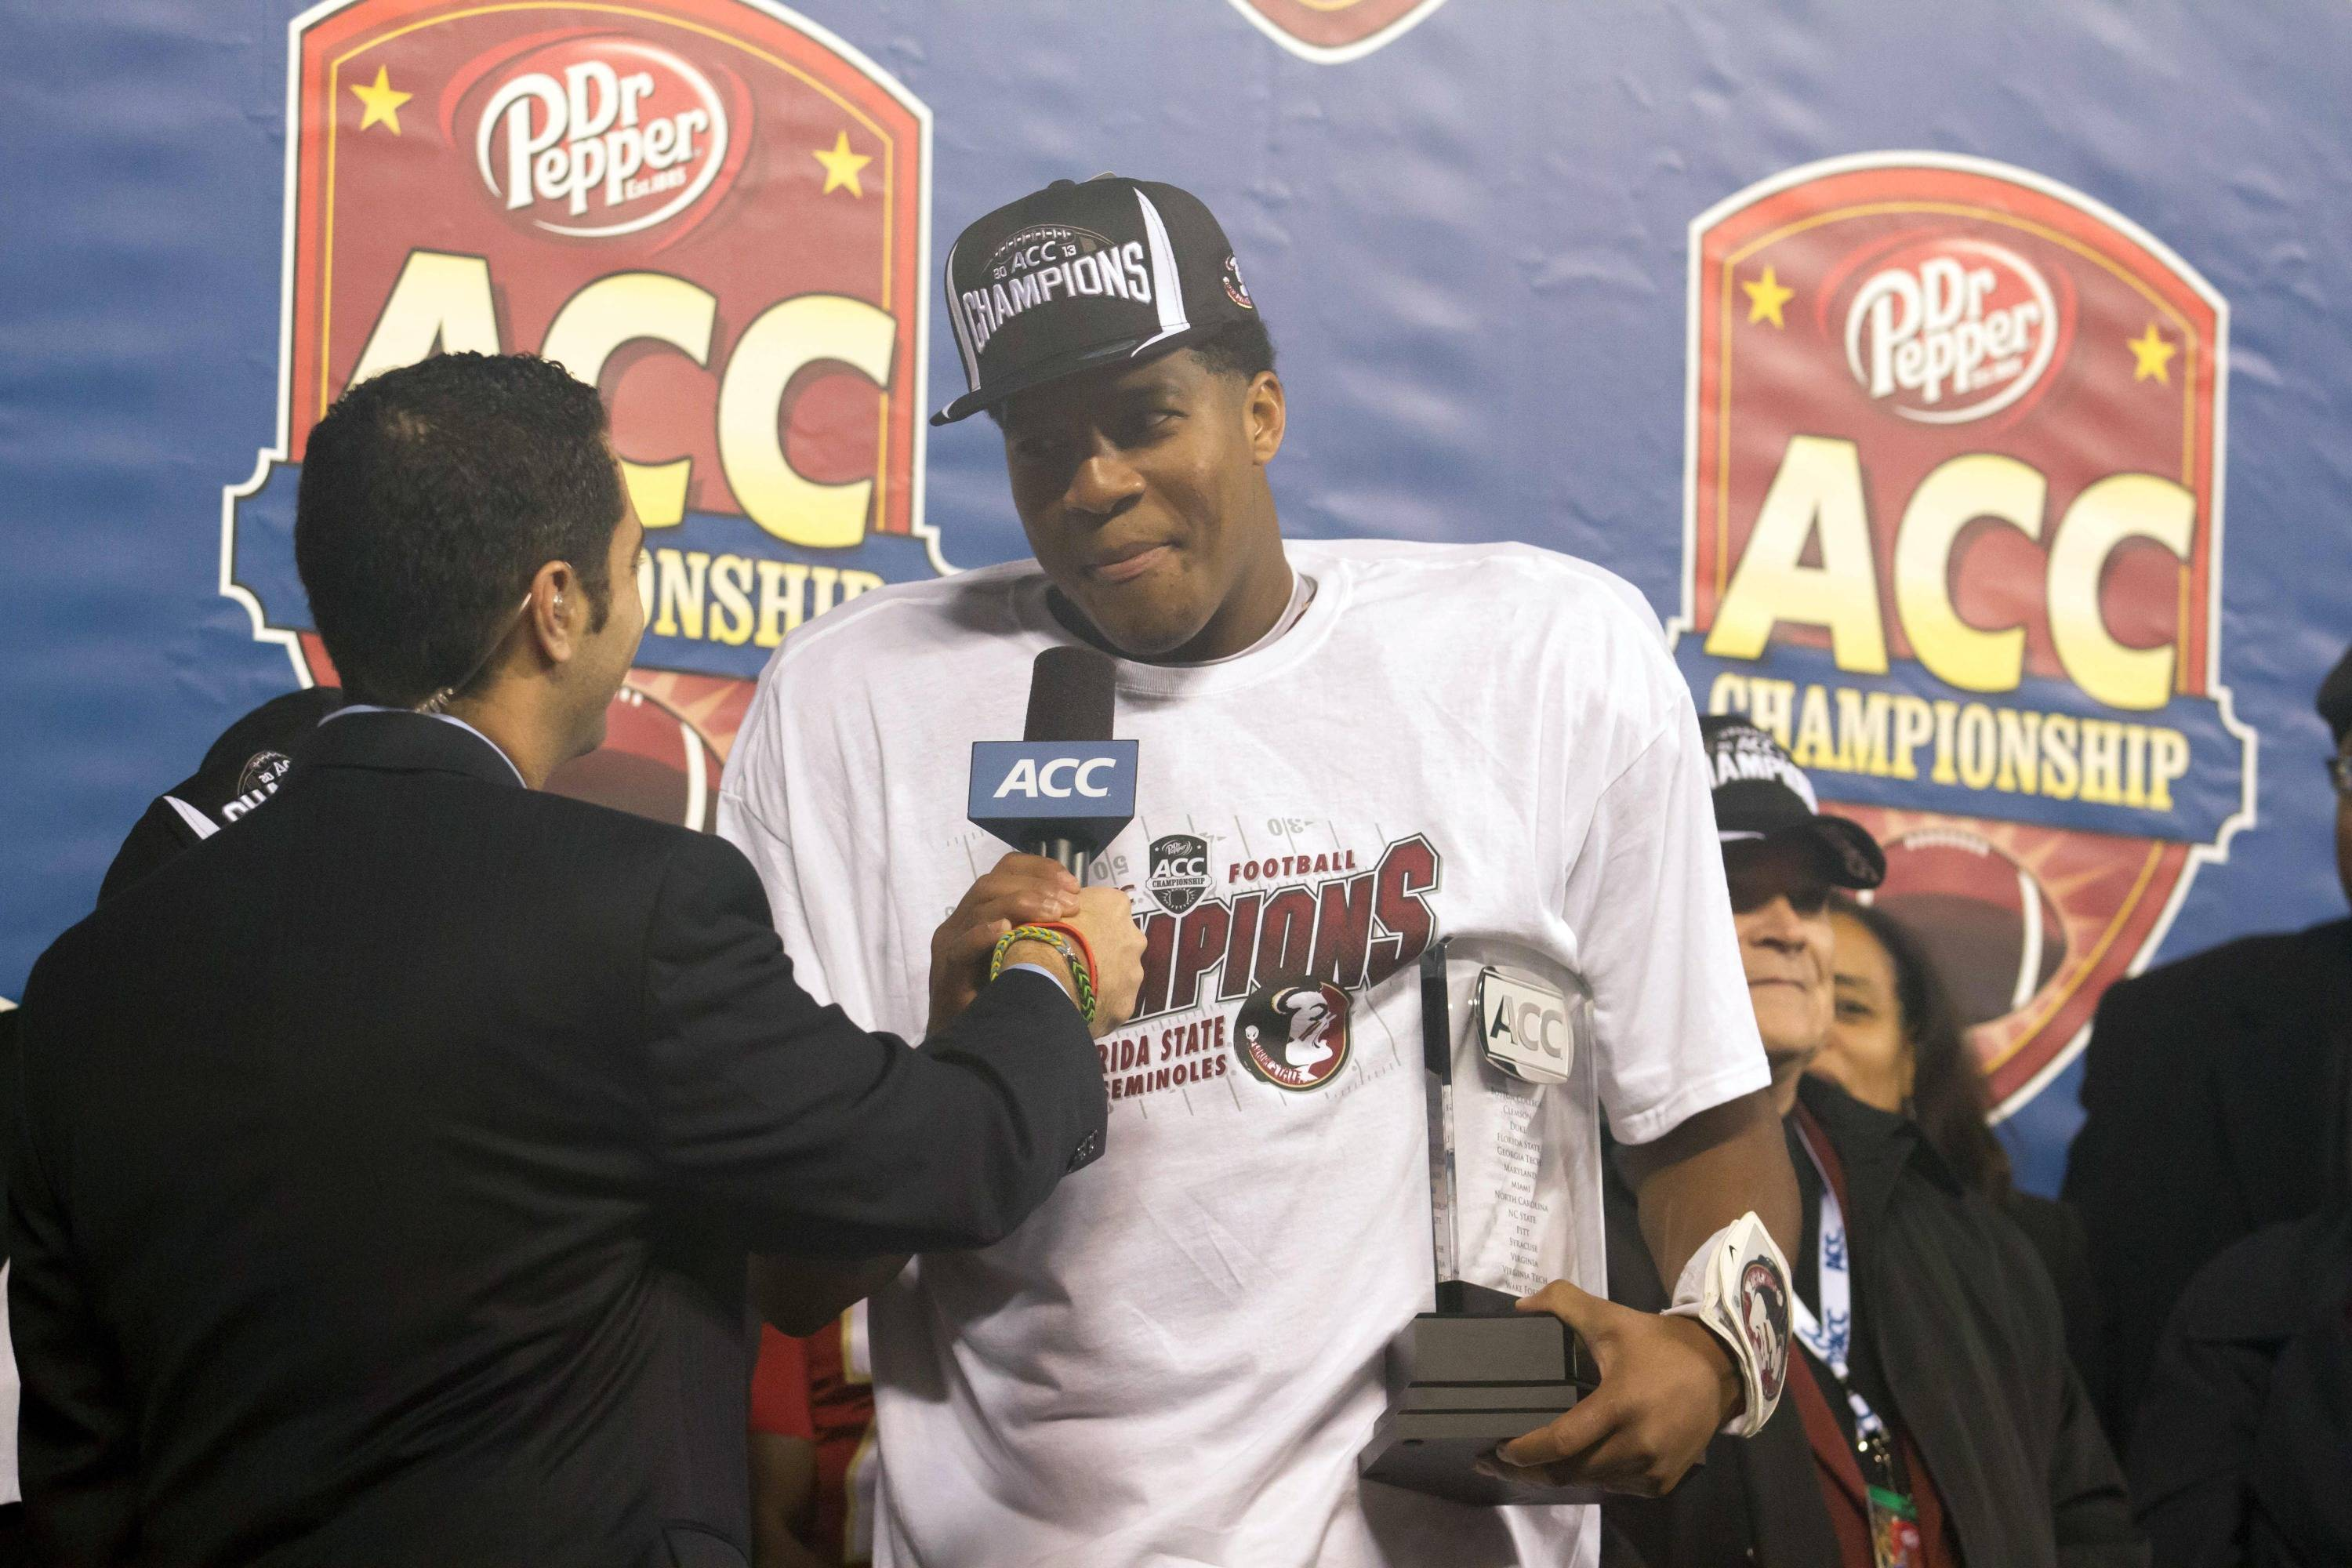 Dec 7, 2013; Charlotte, NC, USA; Florida State Seminoles quarterback Jameis Winston (5) accepts the ACC Championship Trophy after defeating the Duke Blue Devils at Bank of America Stadium. FSU defeated Duke 45-7. Mandatory Credit: Jeremy Brevard-USA TODAY Sports